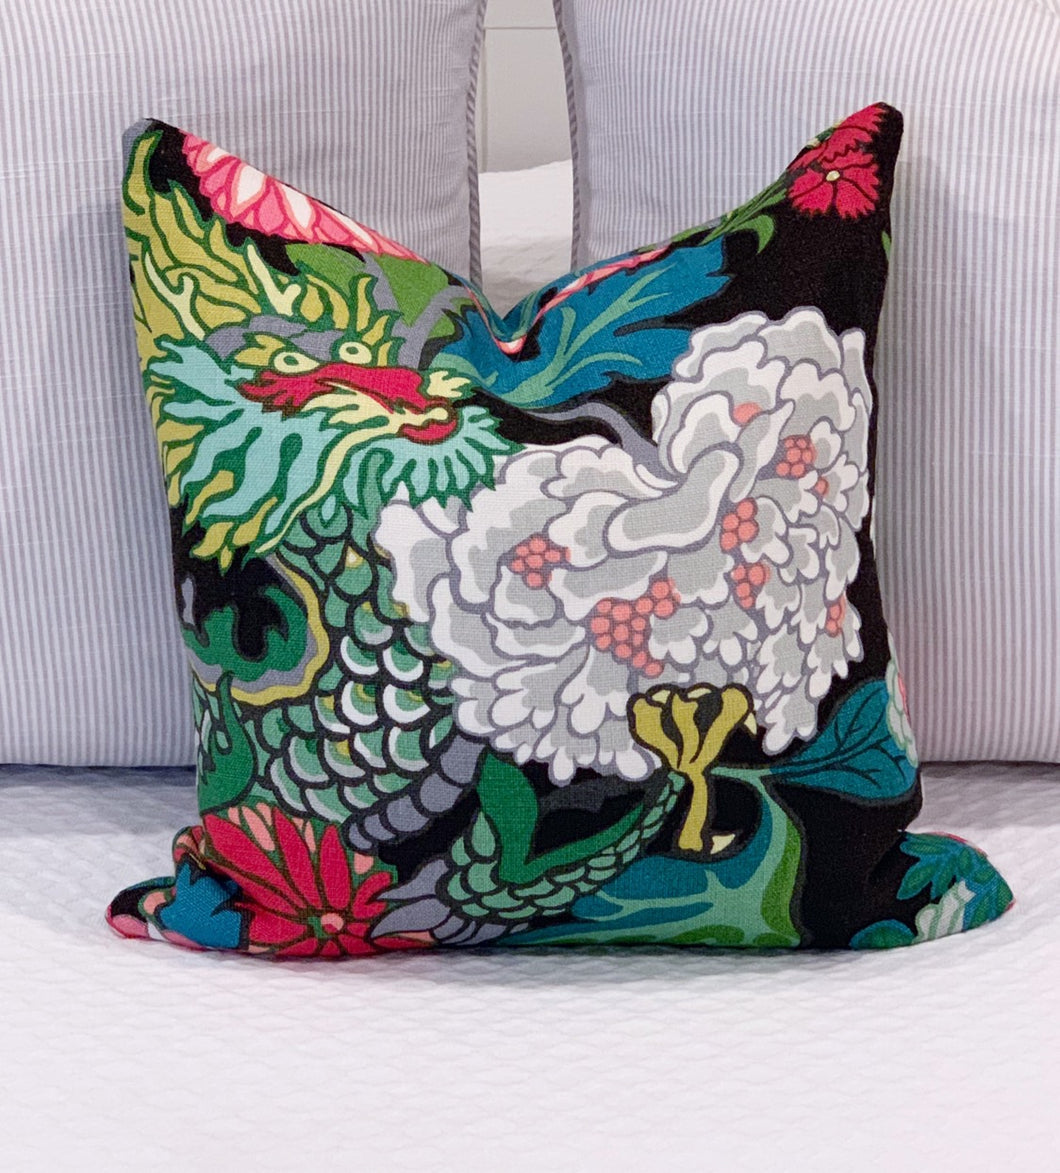 Designer Fabric Pillow Cover - Schumacher Chiang Mai Dragon  (Single) - Ebony Black on BOTH Sides - Ginger jar